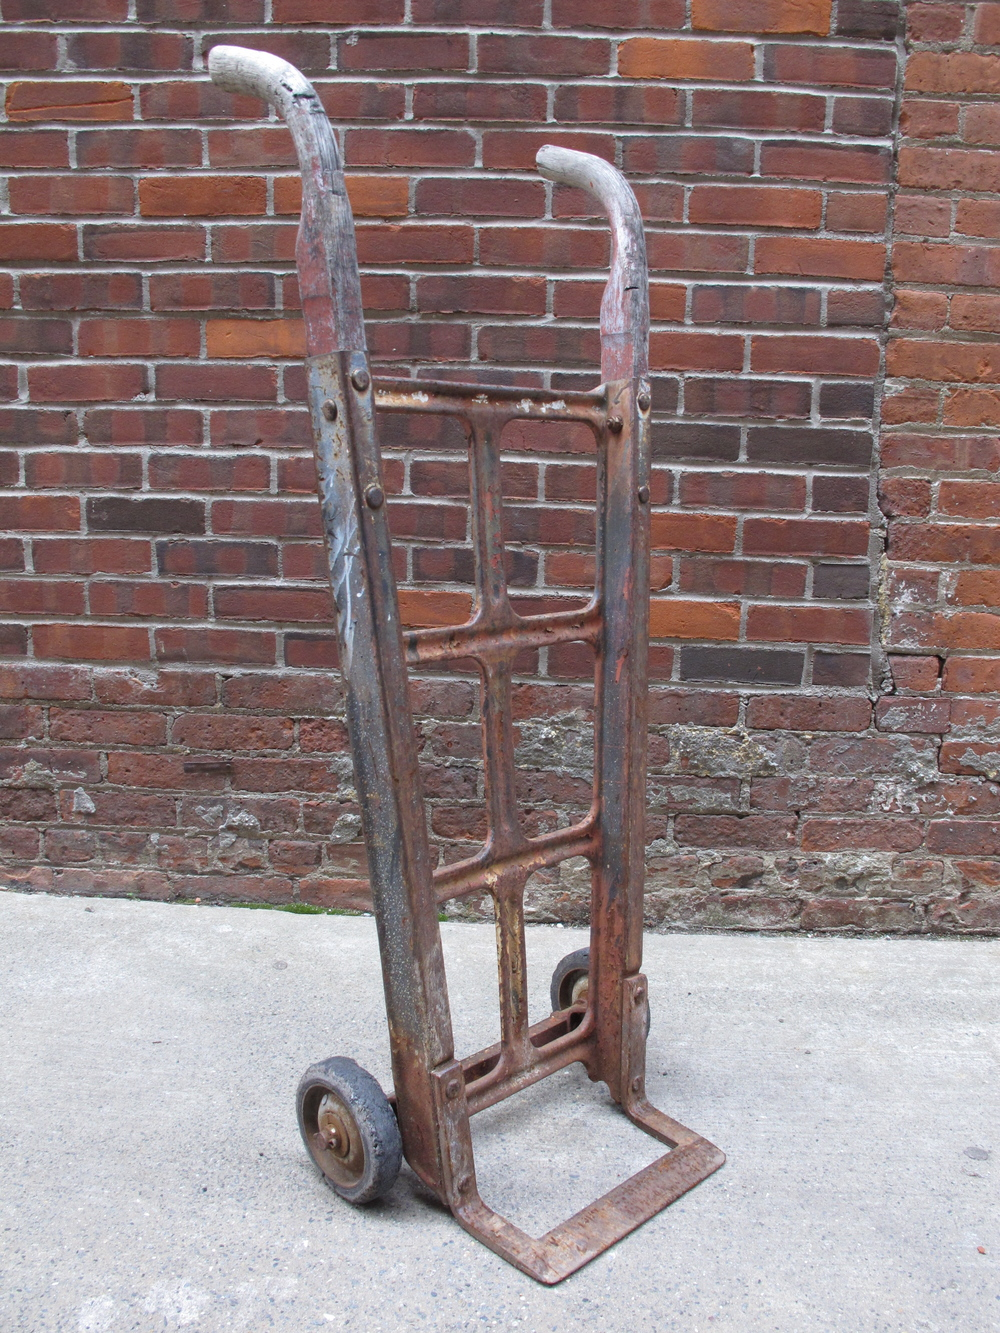 Wood and red rusted metal 2-wheeled dolly $75